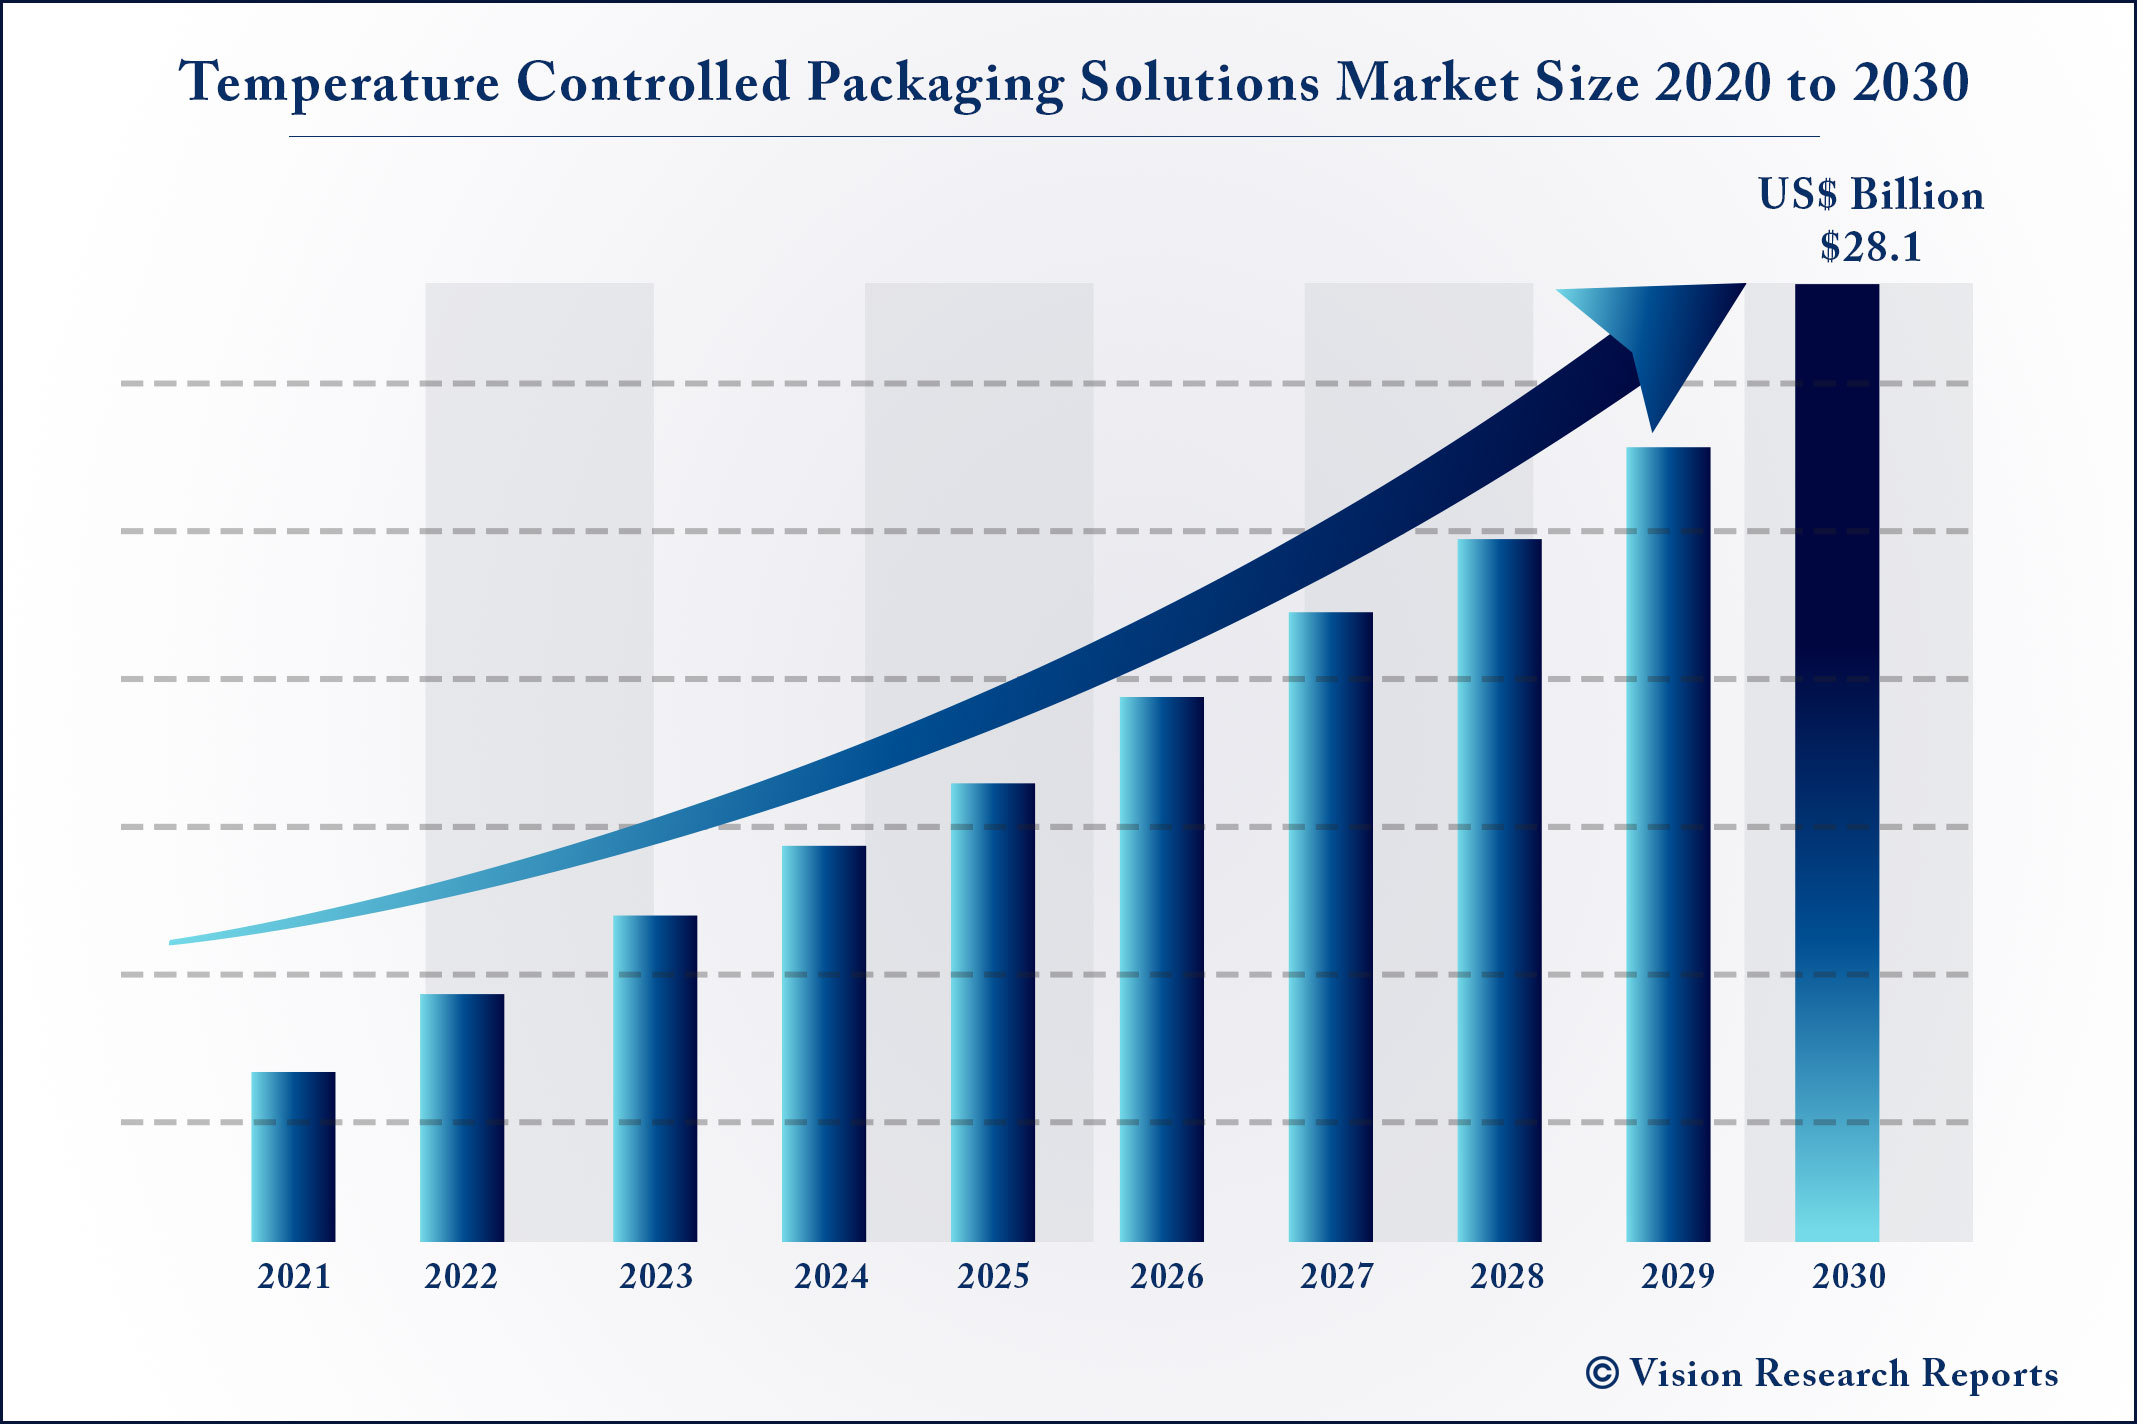 Temperature Controlled Packaging Solutions Market Size 2020 to 2030